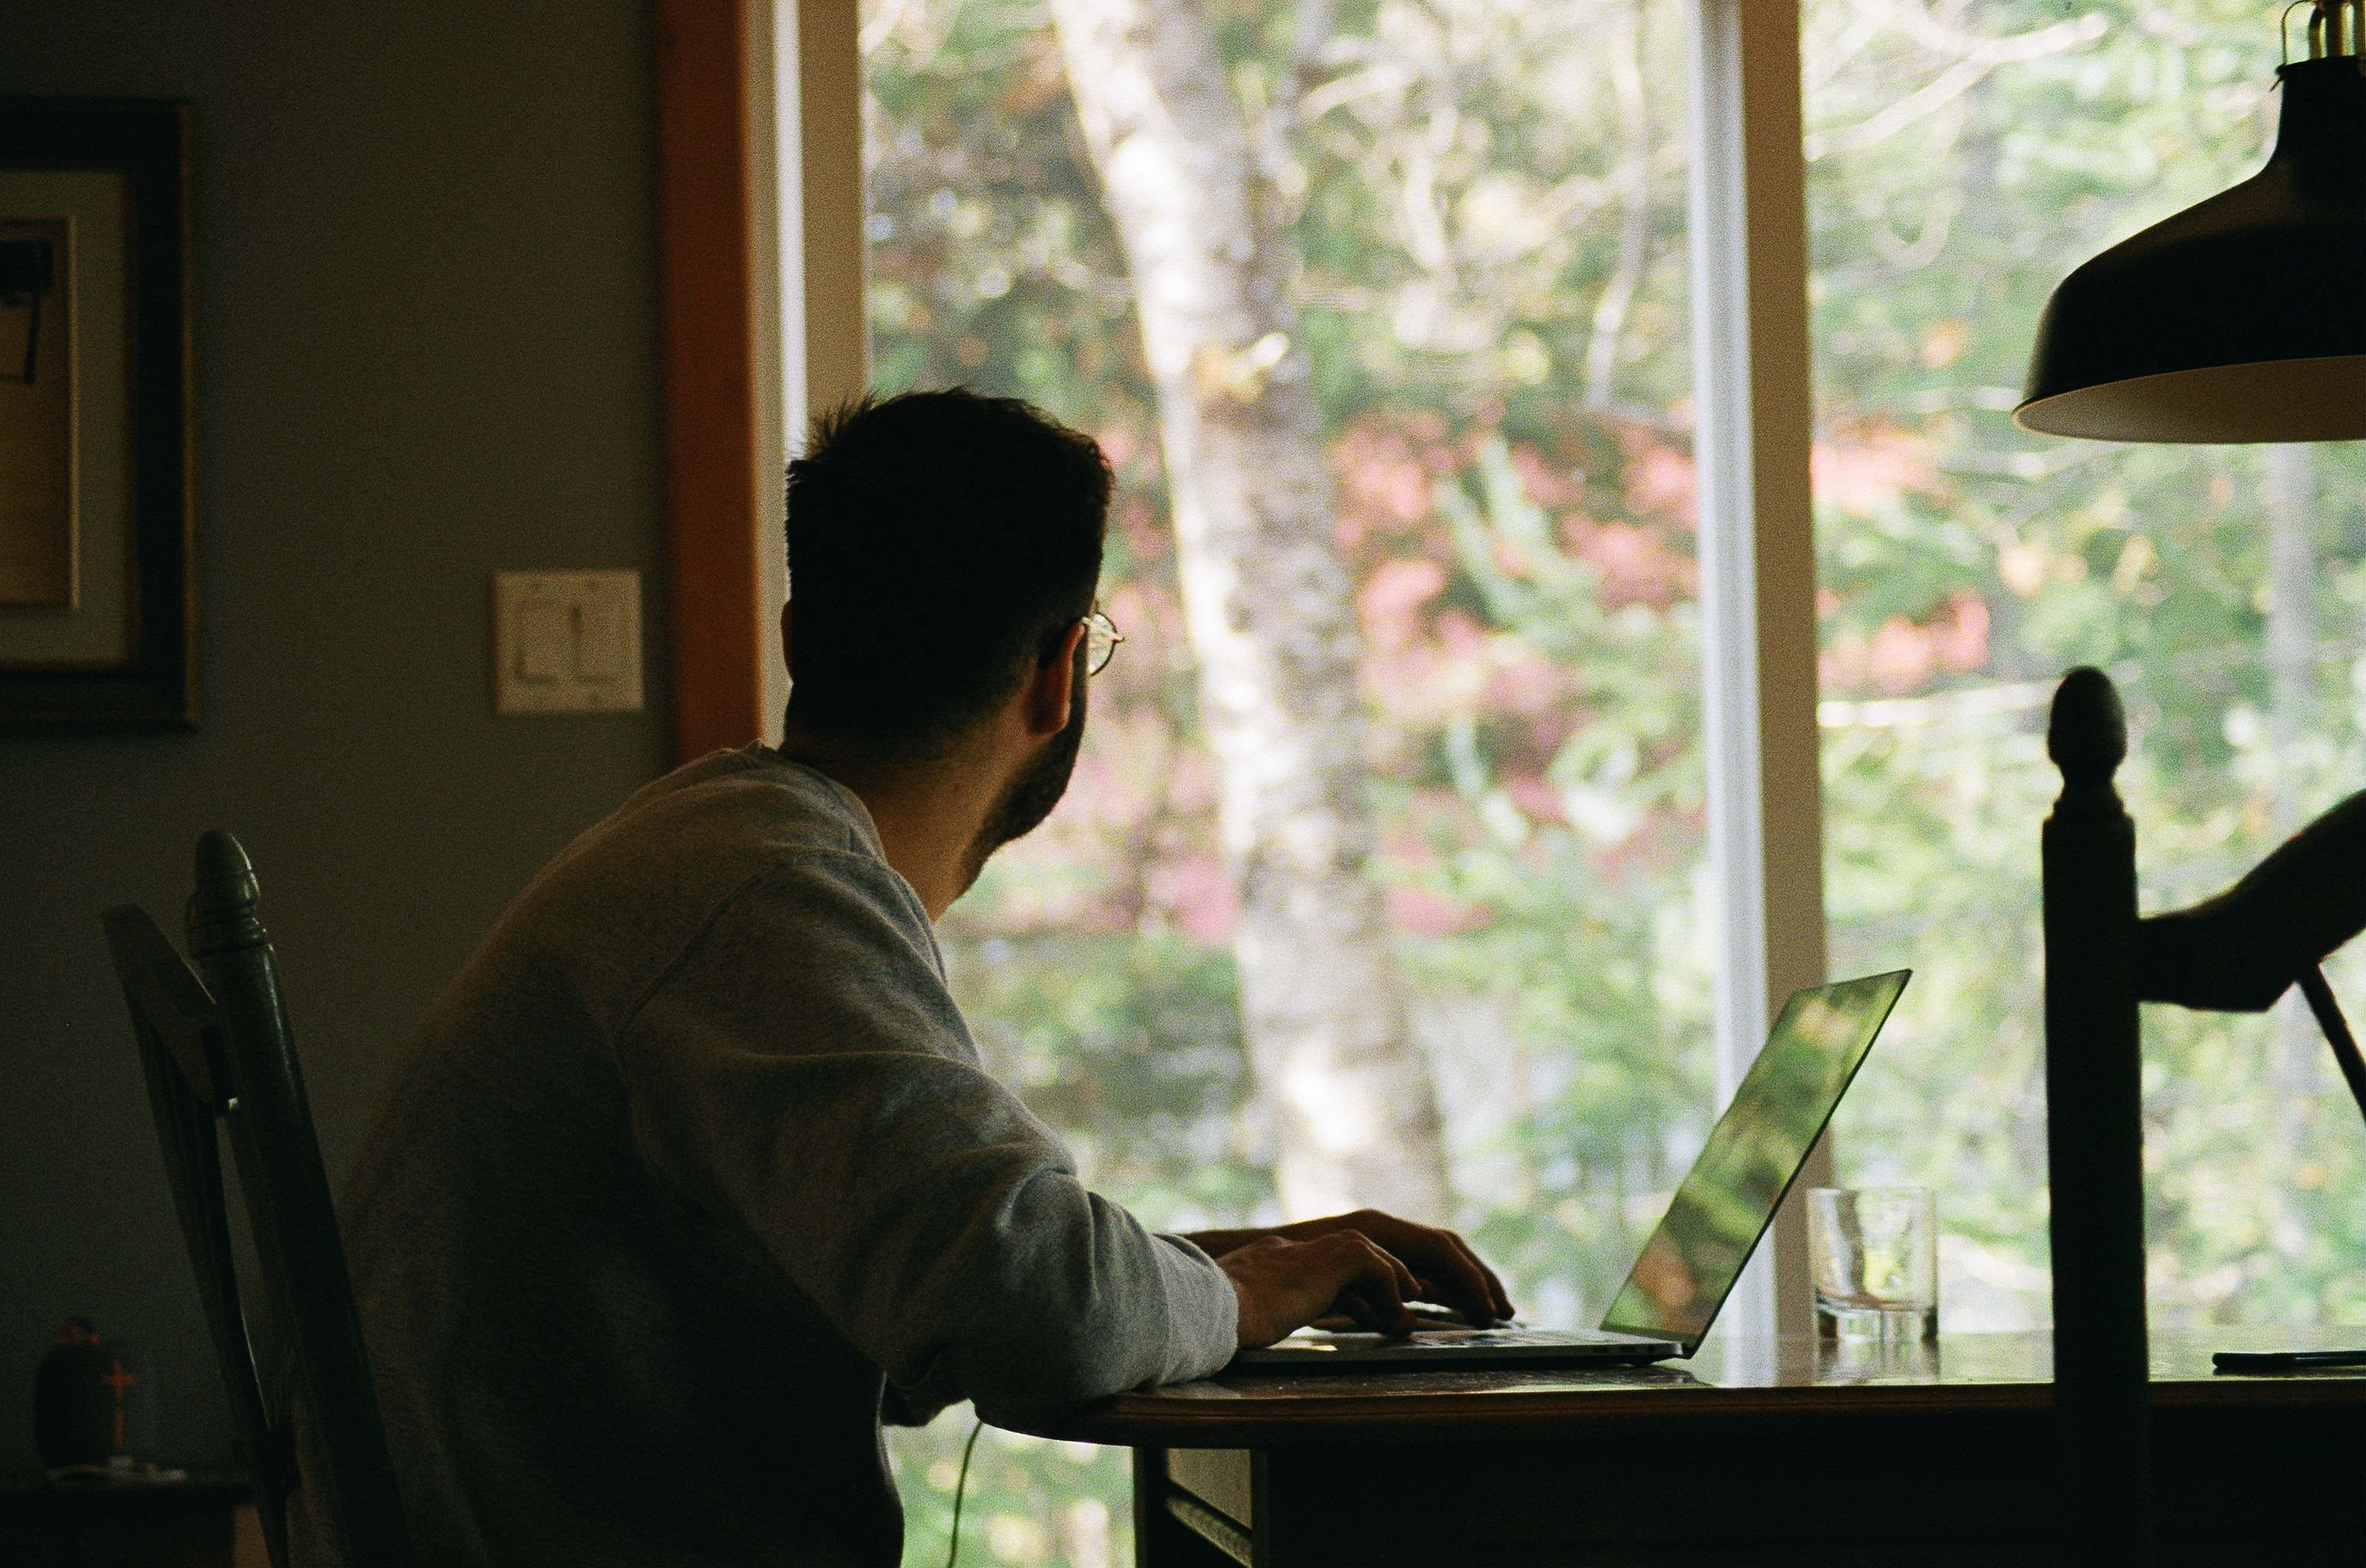 A darkened man looks out his sliding door to nature. He is tired of his Zoom meetings.